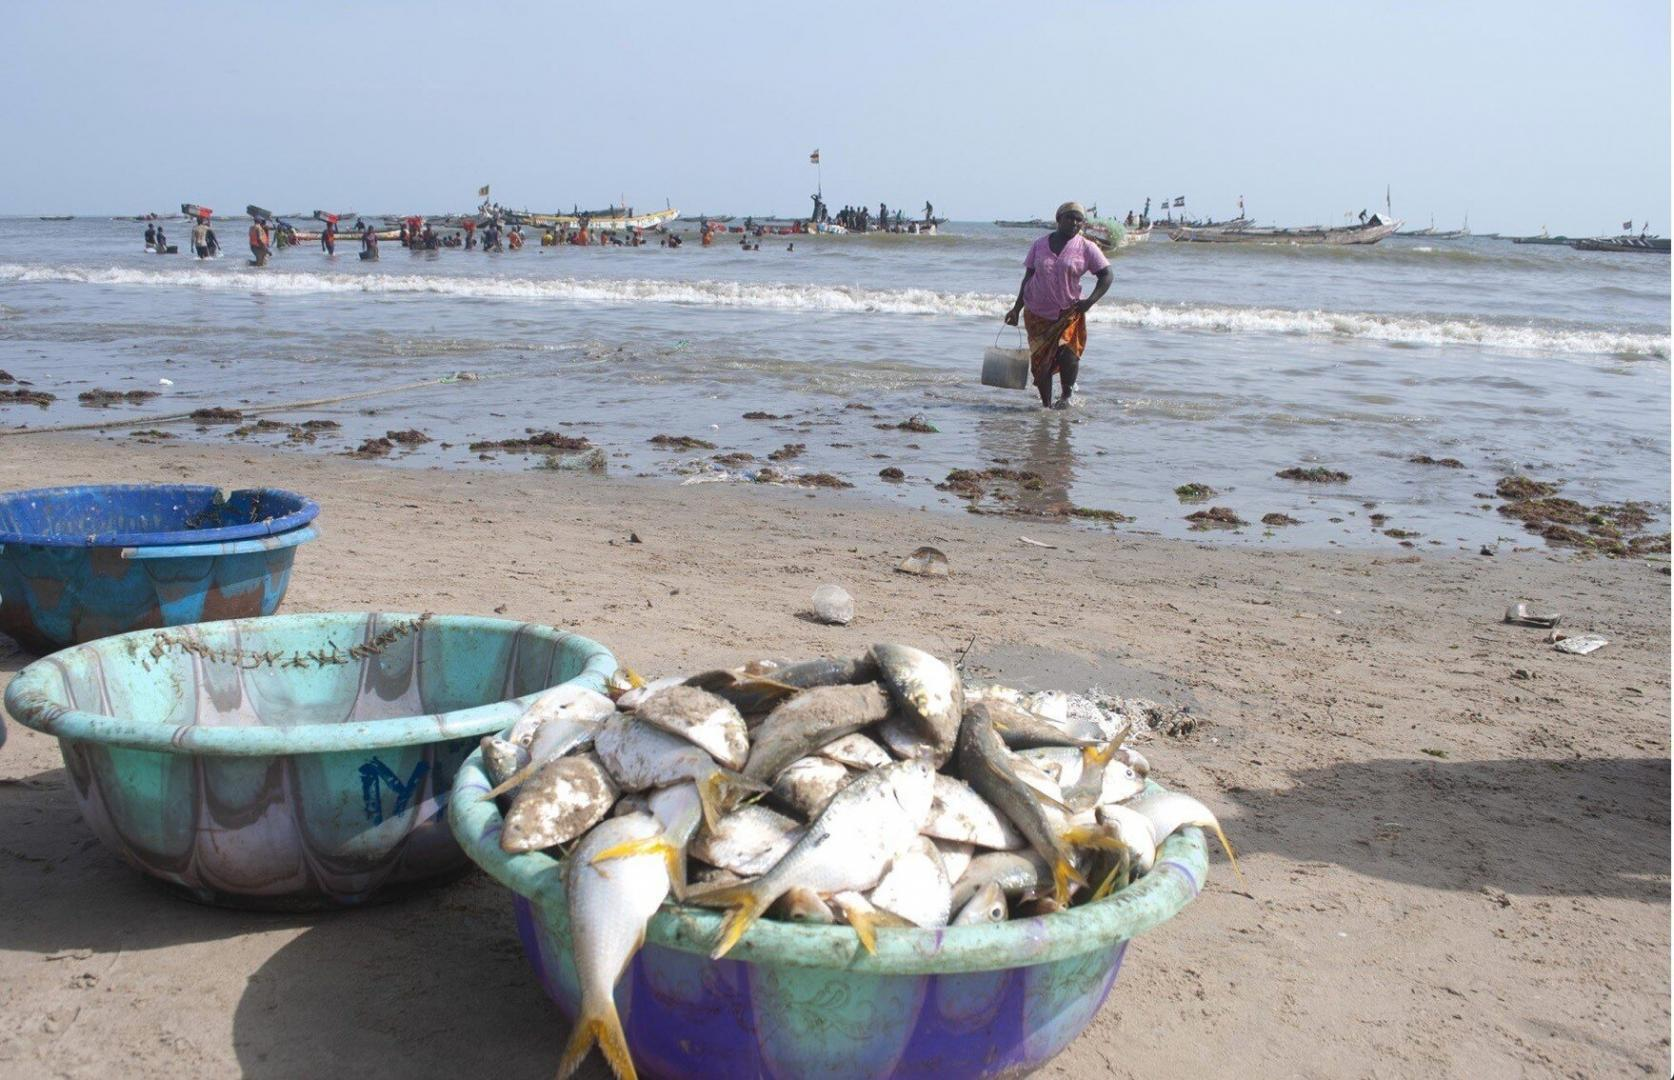 Small fish like these, caught by local artisanal fishers, are a vital source of protein for all Gambians, both on the coast and inland (Image: Mustapha Manneh / China Dialogue)